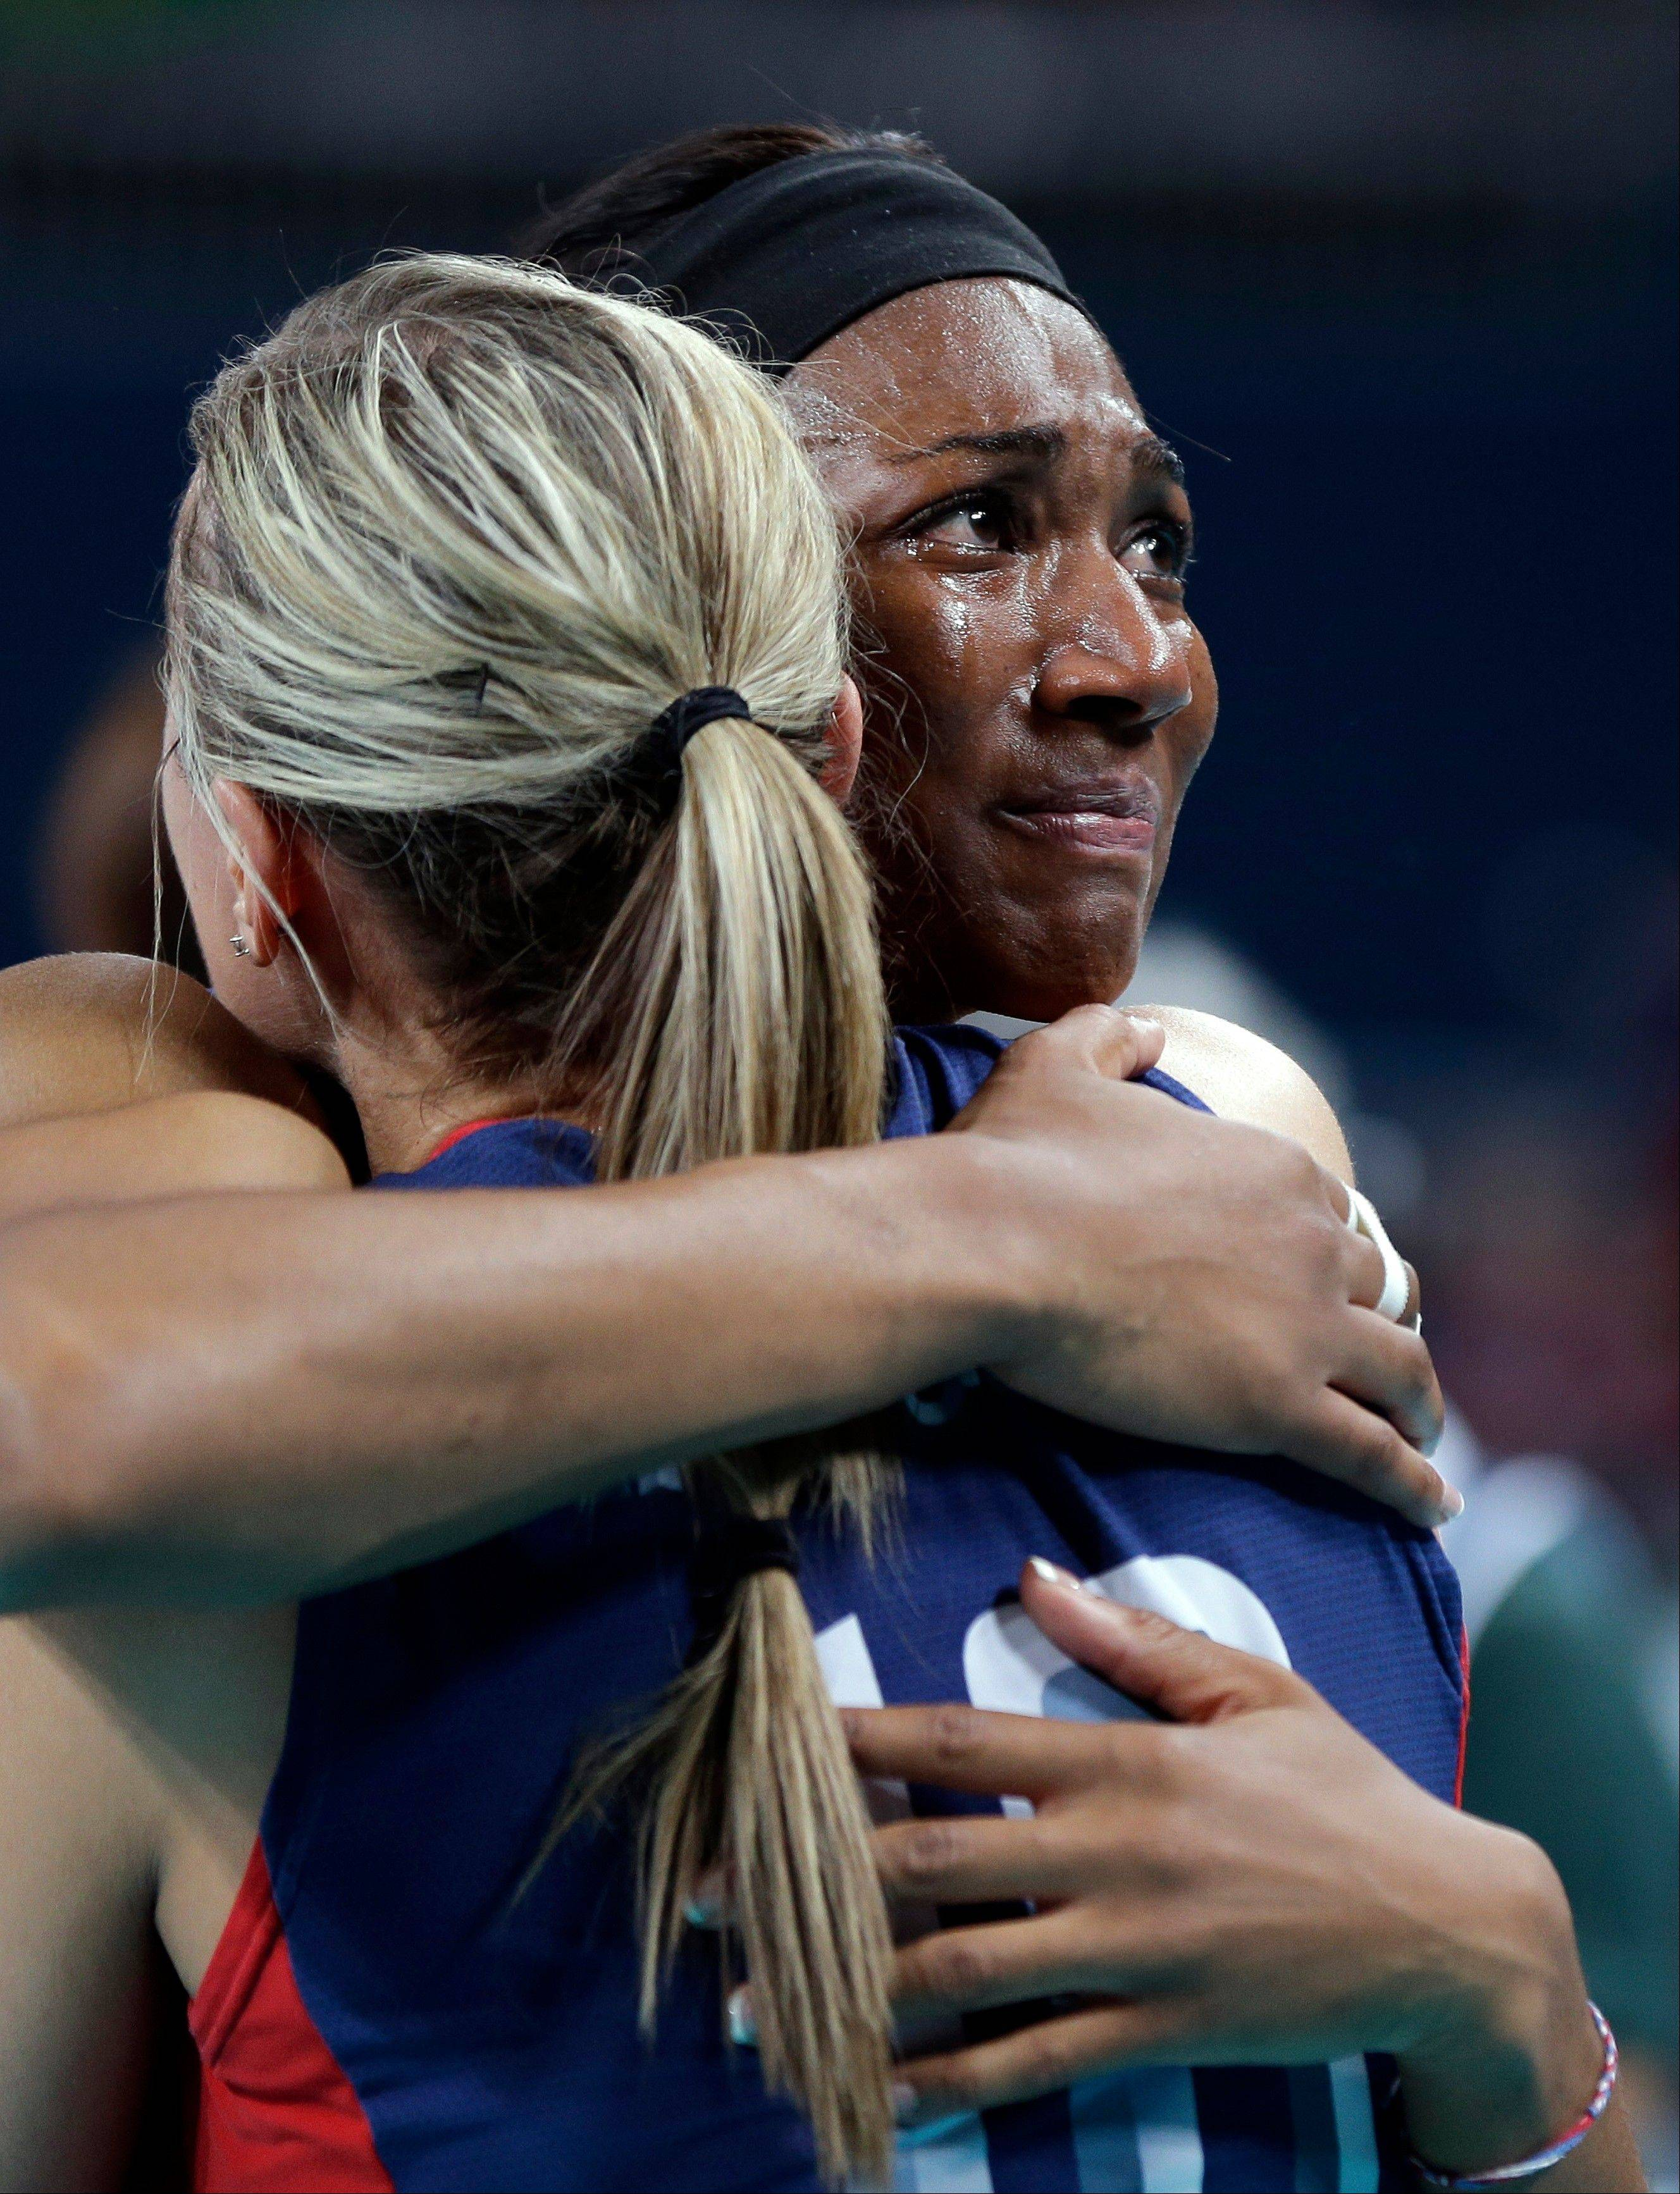 USA's Foluke Akinradewo (16, right) cries as she hugs teammate Jordan Larson (10) after losing to Brazil 3-1 during a women's volleyball gold medal match at the 2012 Summer Olympics Saturday, Aug. 11, 2012, in London.